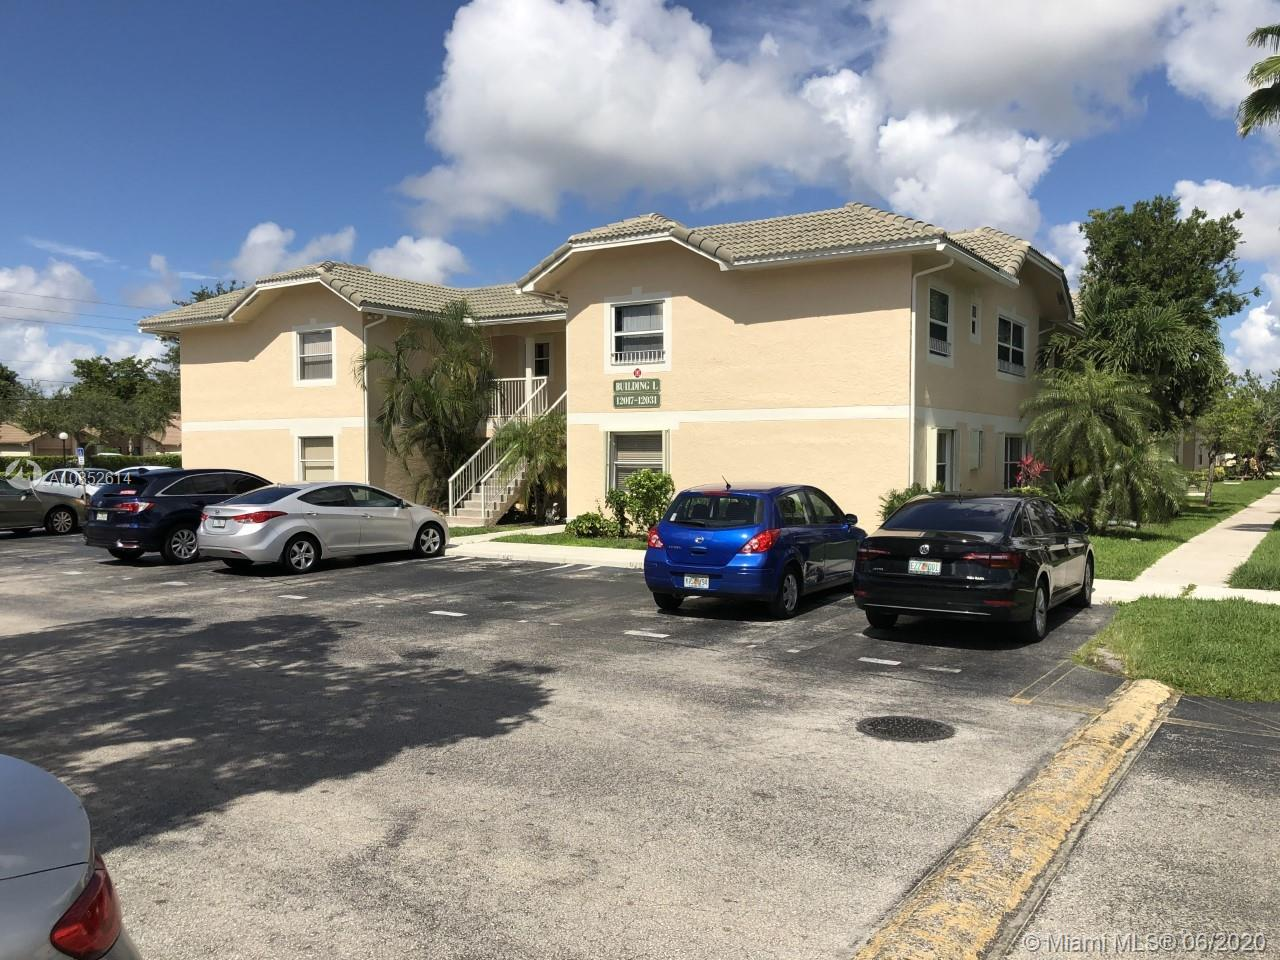 Very cozy / Great Condo in coral springs. First floor w/  3 bed 2 bath - unit featuring an updated kitchen W/ granite counter tops,  all tile floors, all around rated accordion shutters for your family protection. (very few units in the complex has this feature), a walk-in closet in the master bedroom, a laundry room closet with washer & dryer, a screened patio with garden views. Community pool onsite, outside building freshly paint. Royal Garden in Coral Springs located walk in distance from good schools. Near shopping, highways and recreation pools. Low taxes and association fee. 2 assigned parking spaces,pet o.k., all ages welcome. Water included on HOA w basic cable.